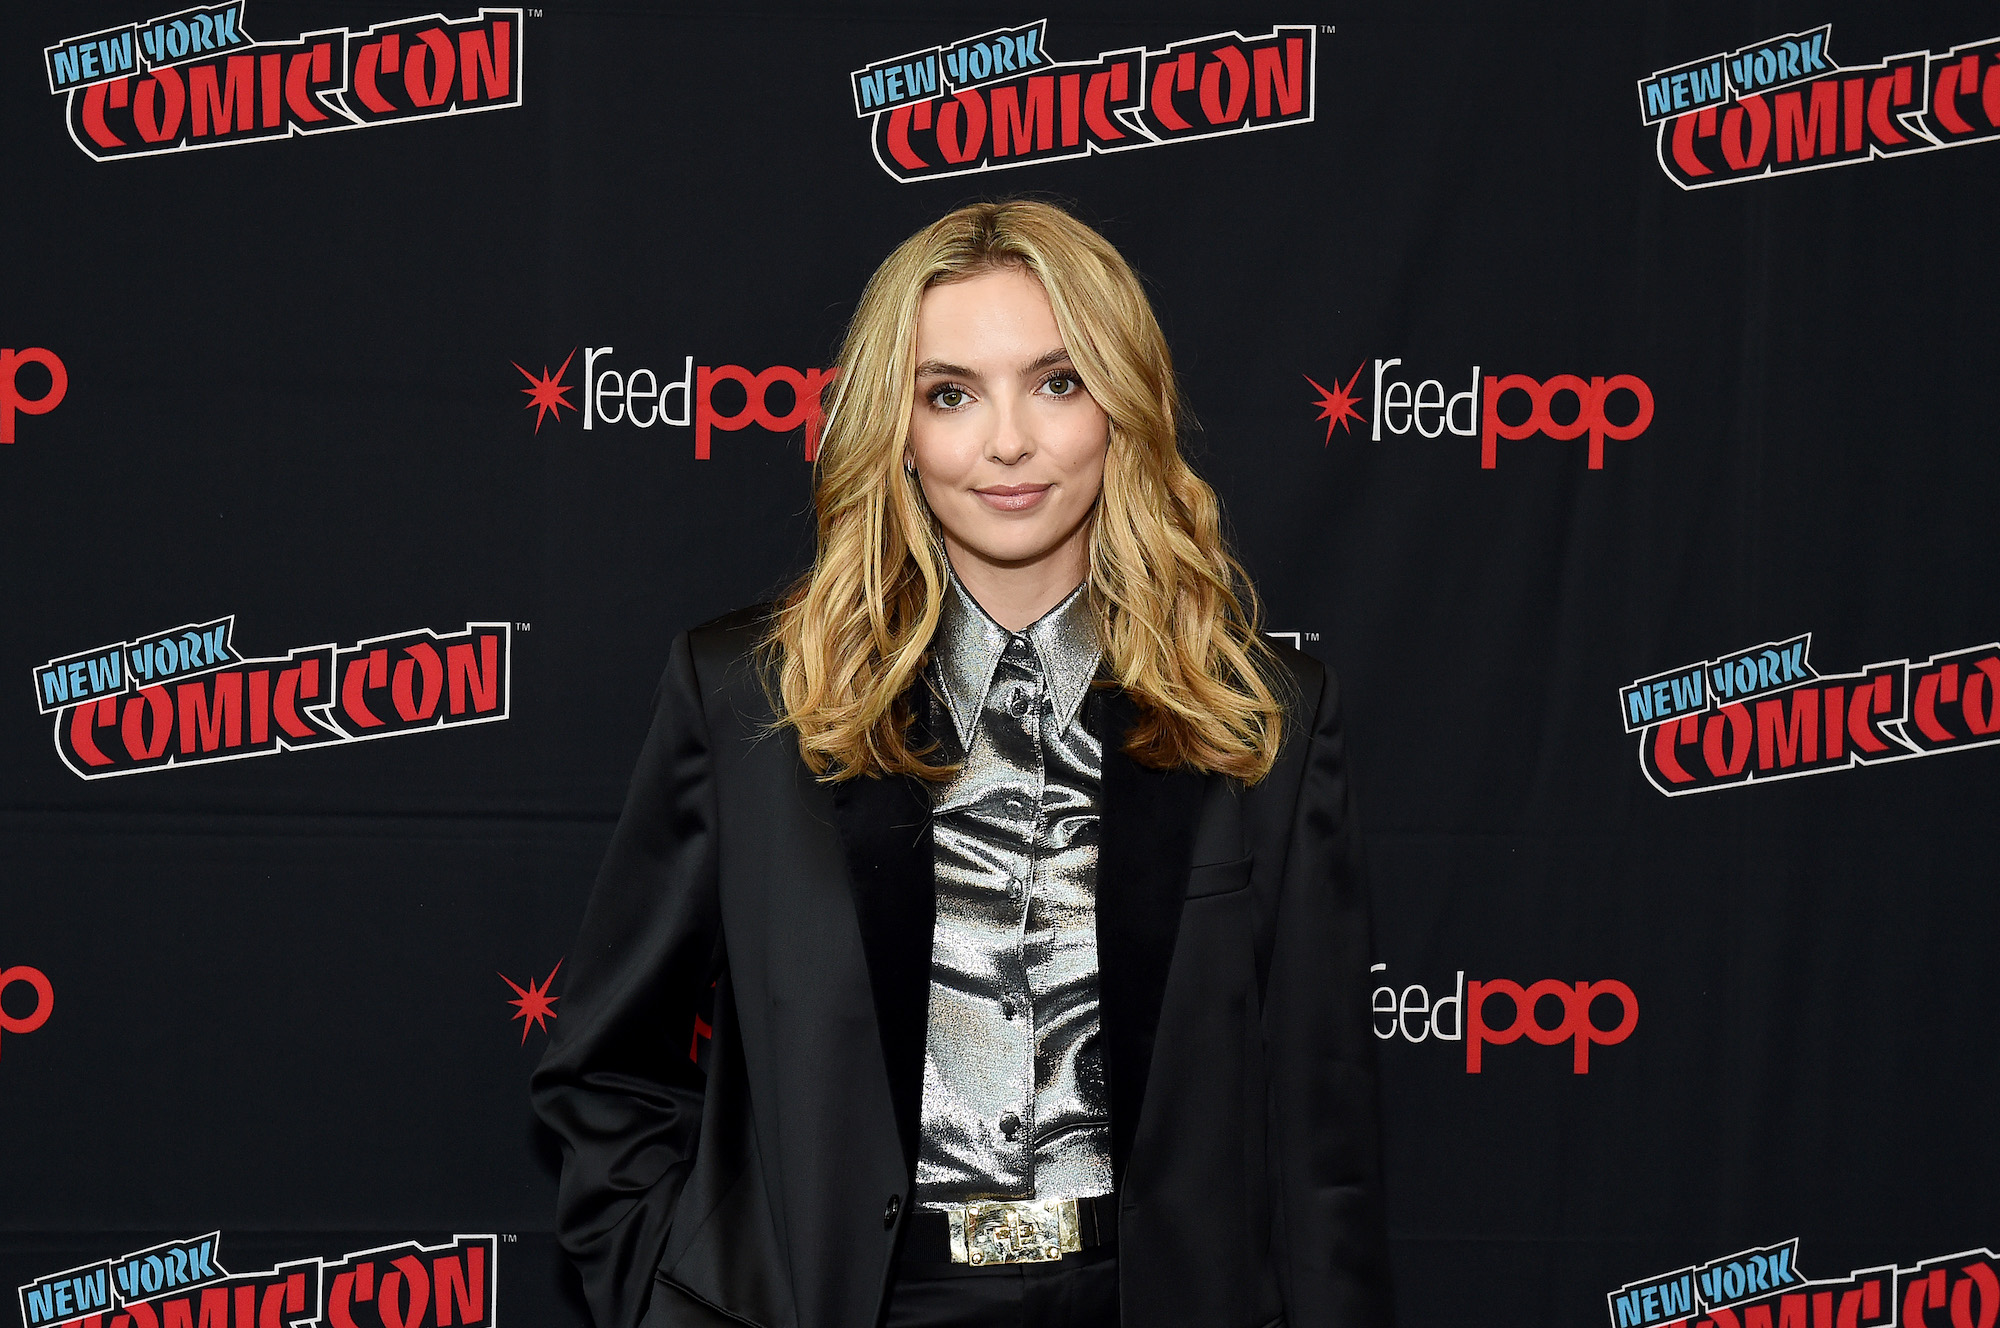 Jodie Comer at New York Comic Con because of her role in 'Free Guy' on October 03, 2019.